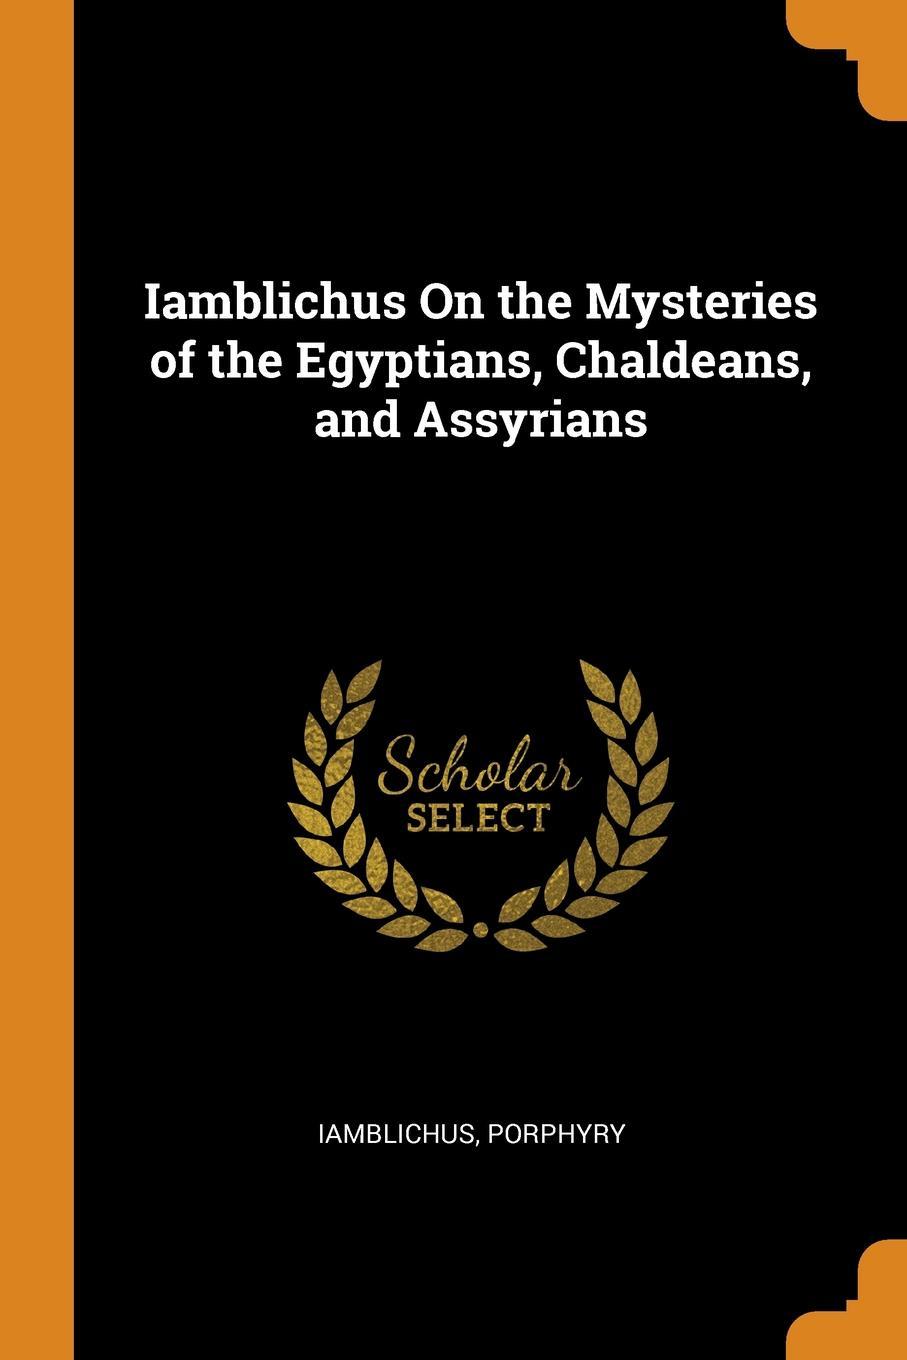 Iamblichus, Porphyry. Iamblichus On the Mysteries of the Egyptians, Chaldeans, and Assyrians